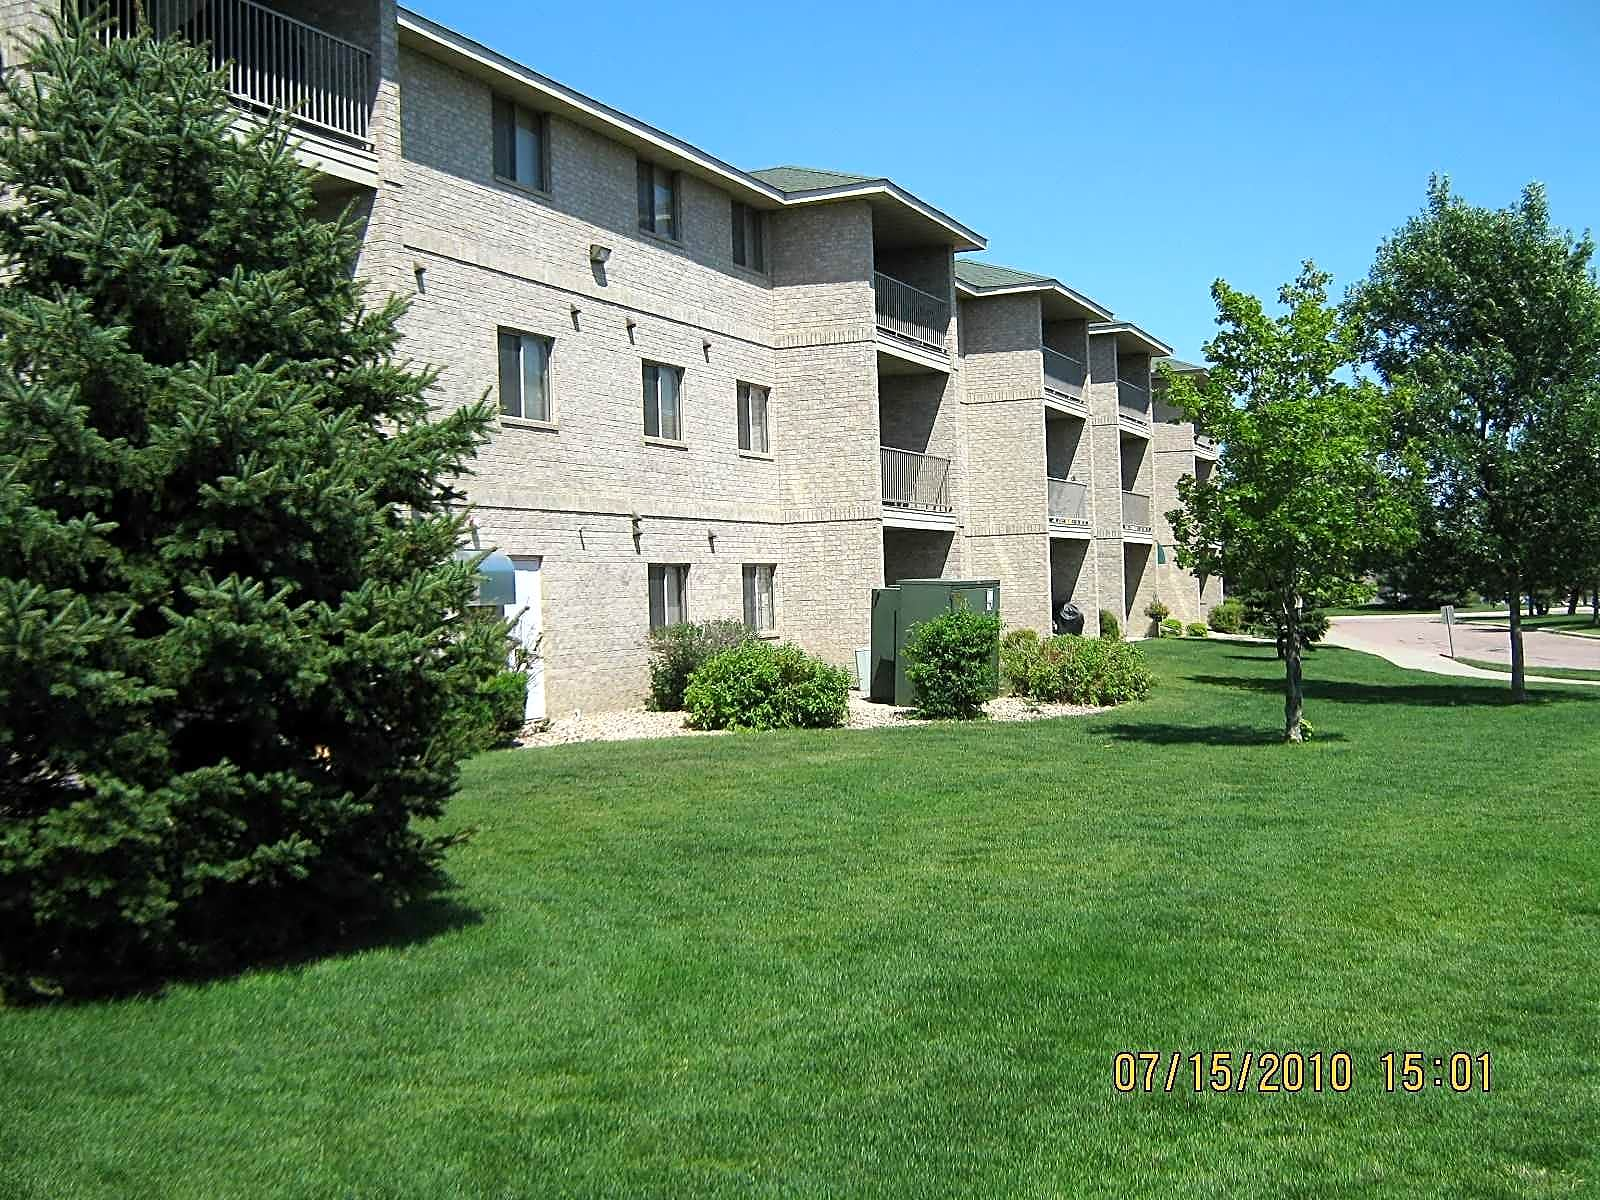 Pet Friendly Apartments In Sioux Falls Sd Pet Friendly Houses For Rent